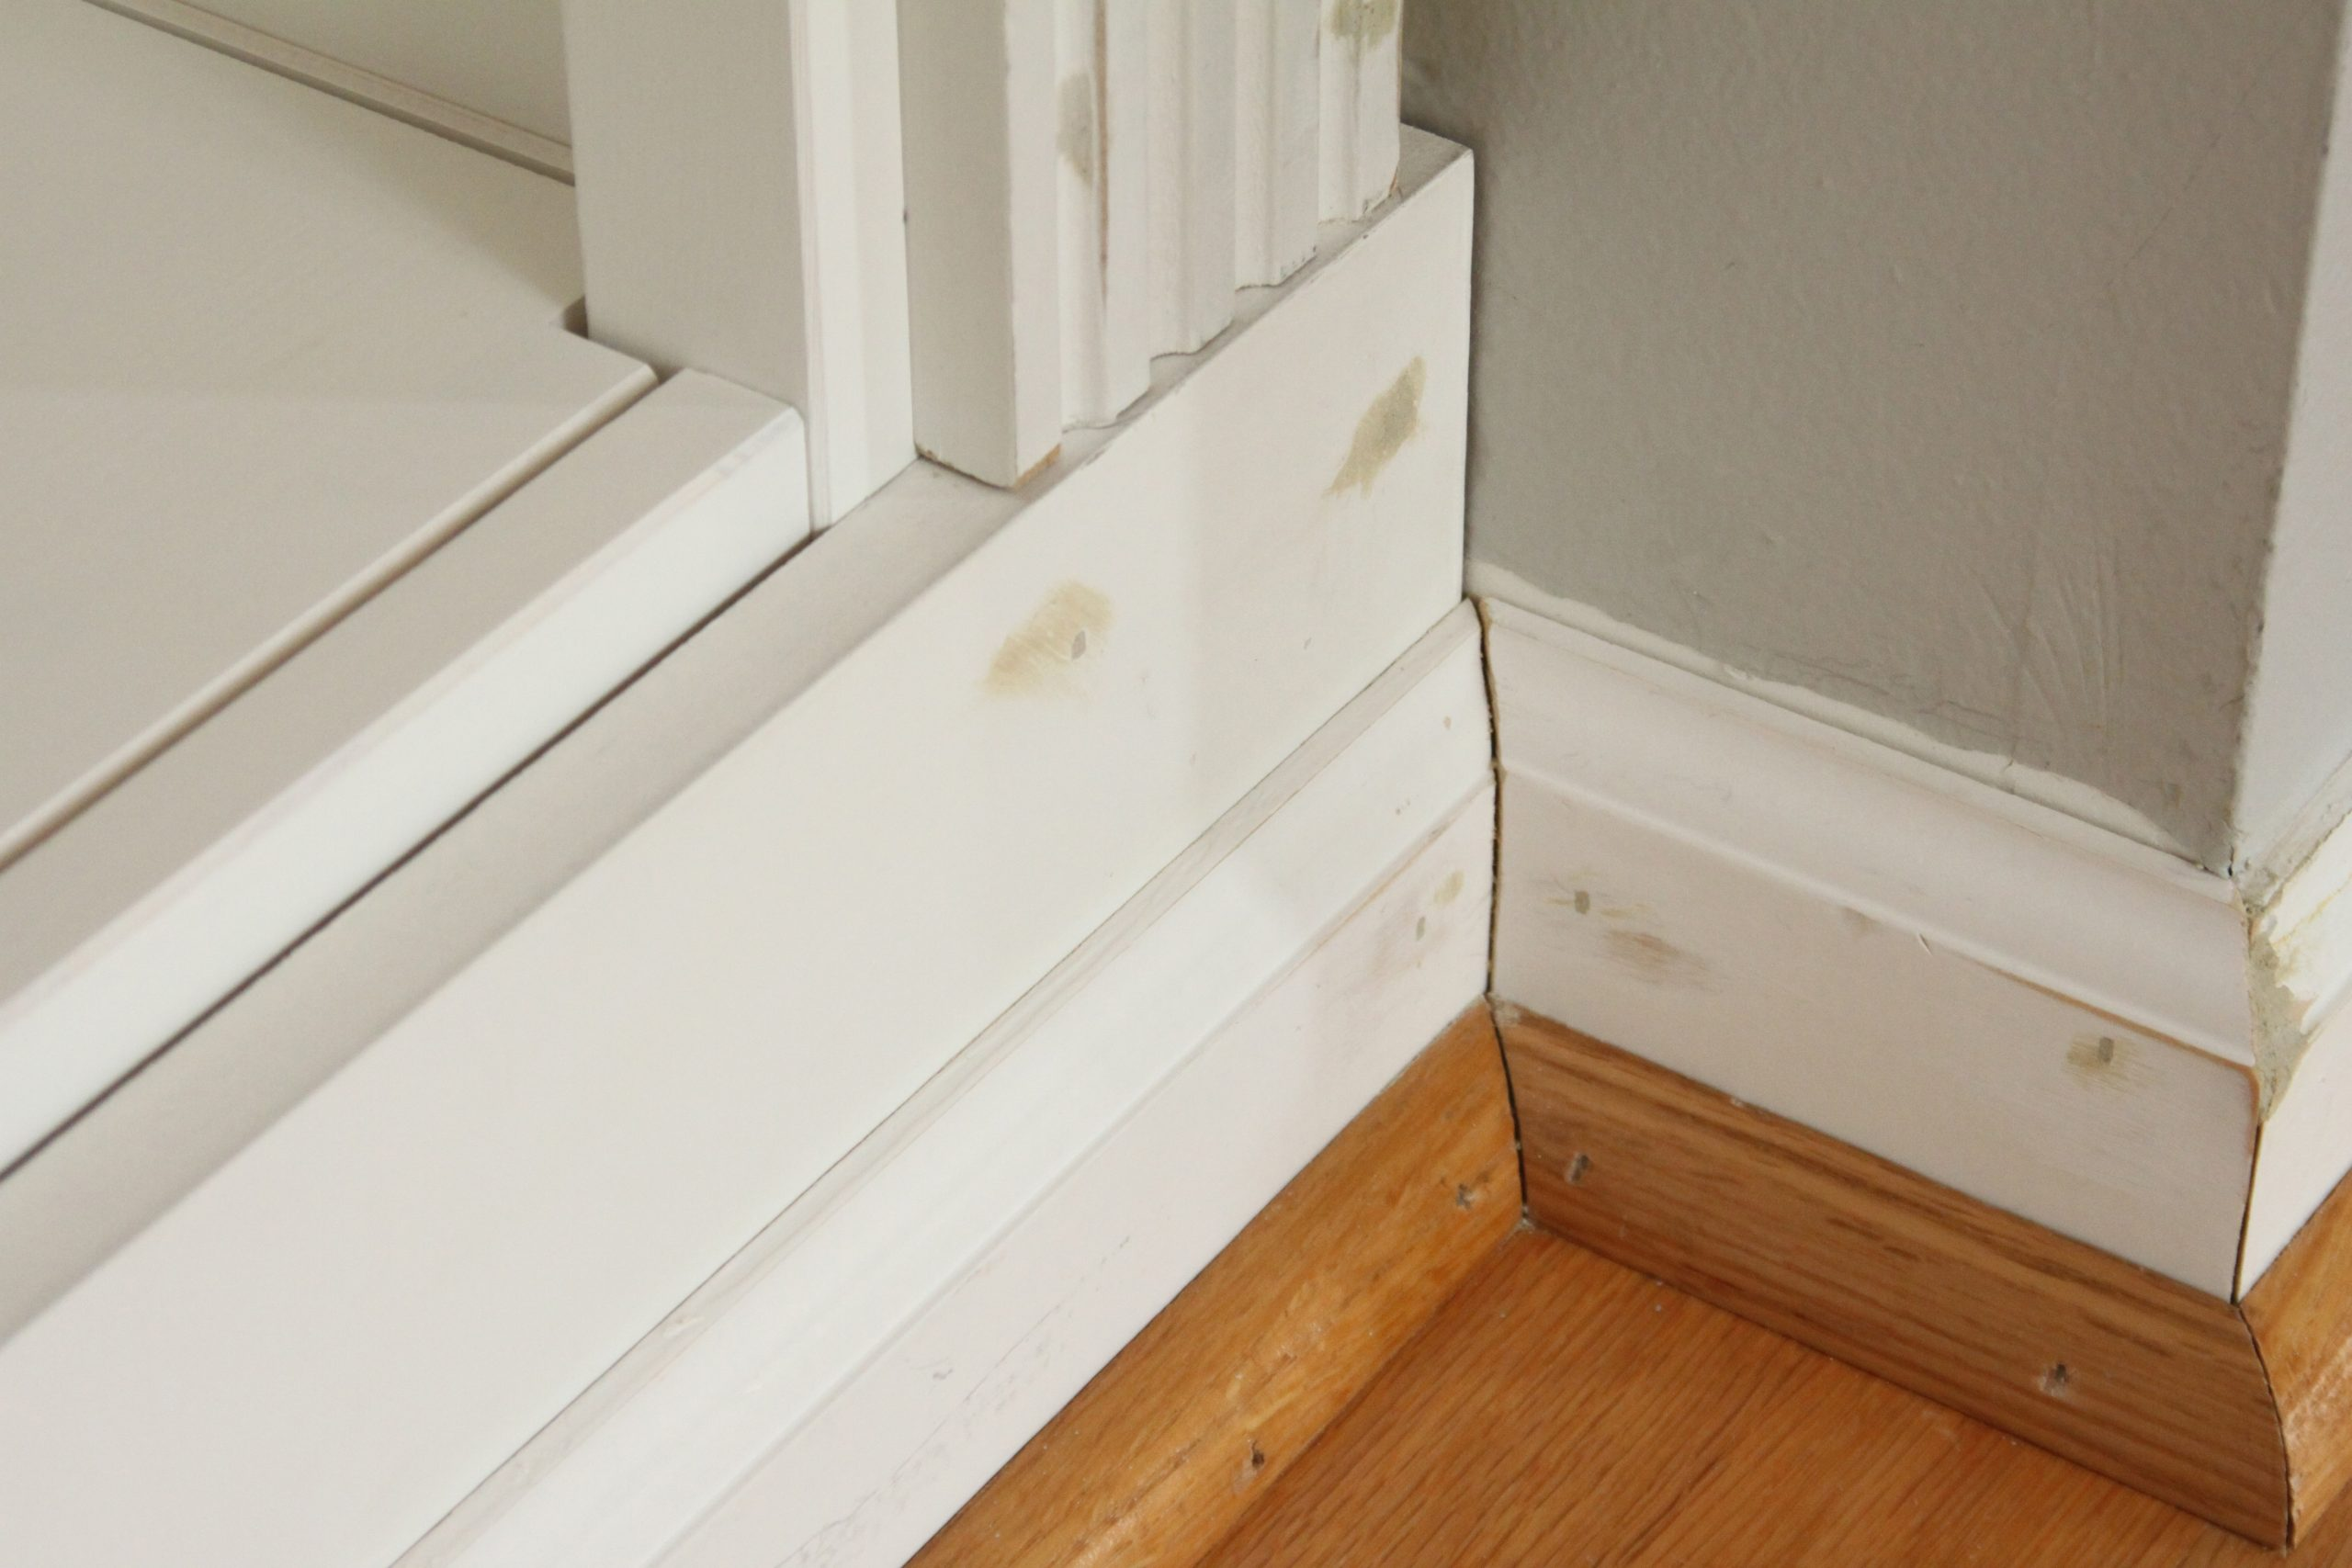 Diy Built-In Bookcase Reveal (An Ikea Hack) – Studio 36 with regard to Diy Bookshelf With Crown Molding